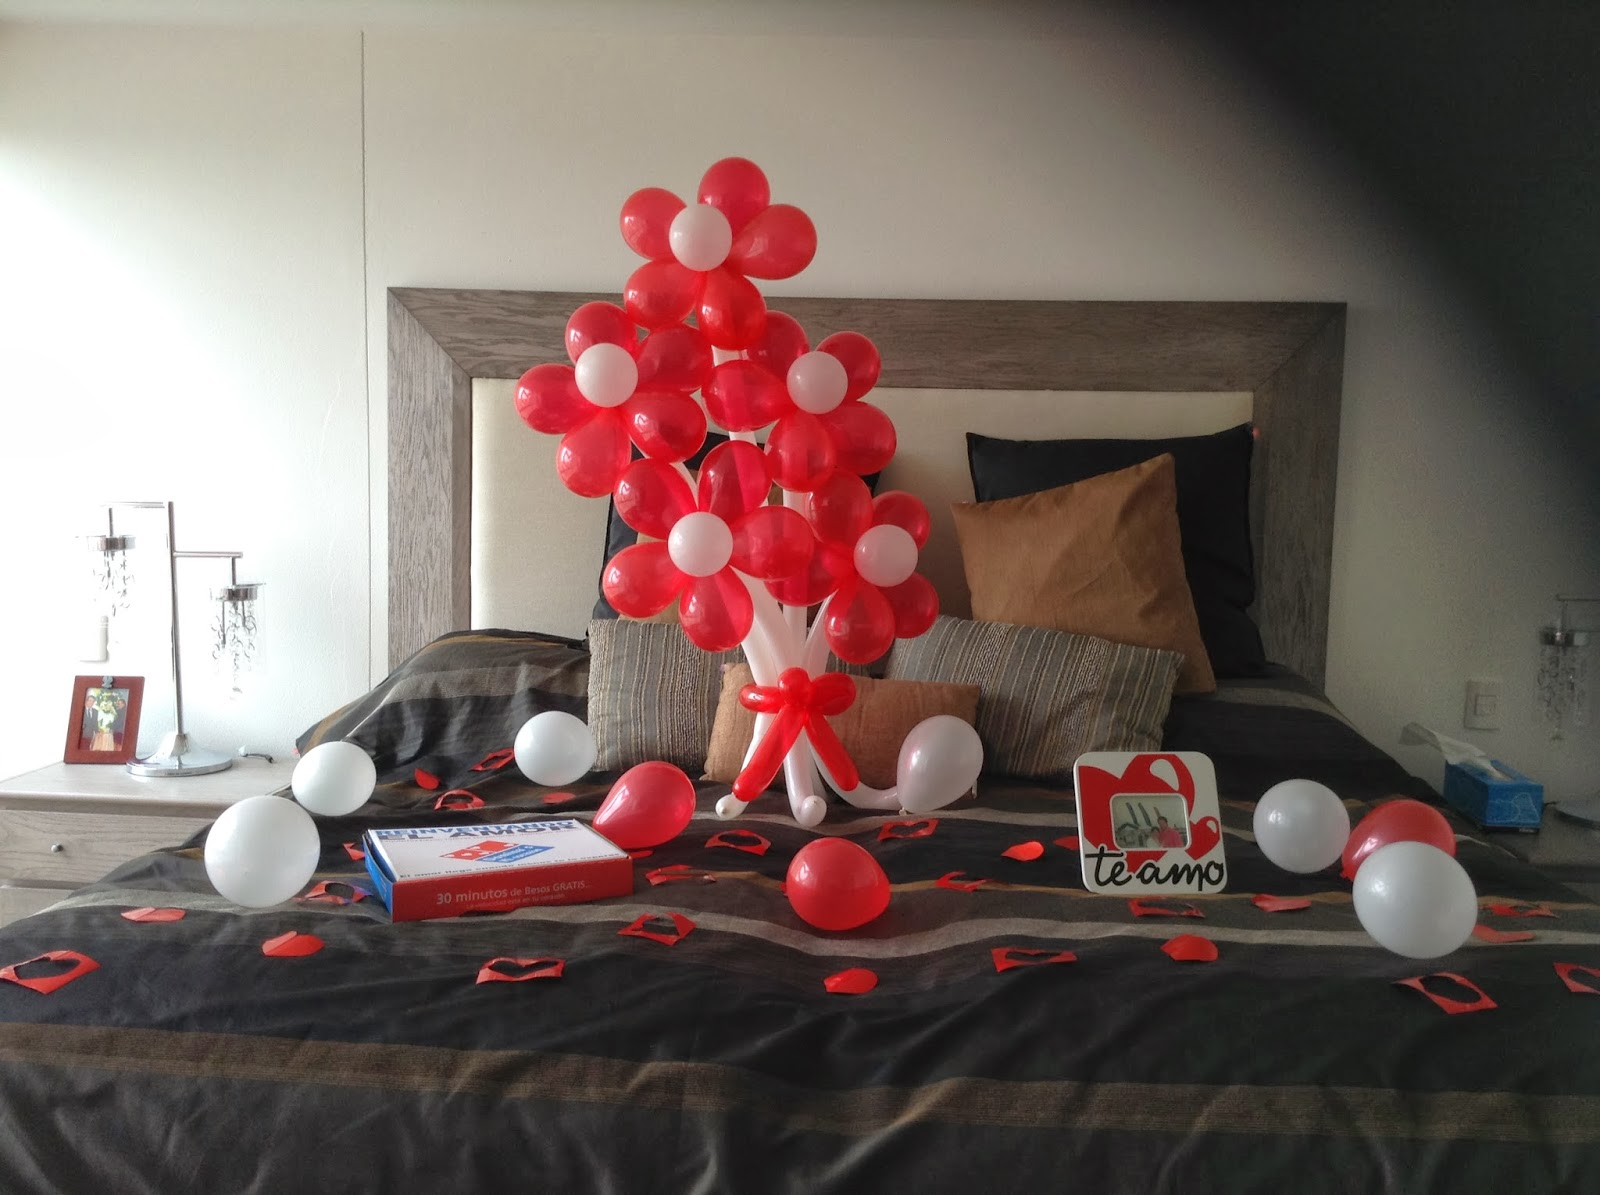 Always a gift regalar es increible decoracion de amor for Cuartos decorados romanticos con globos